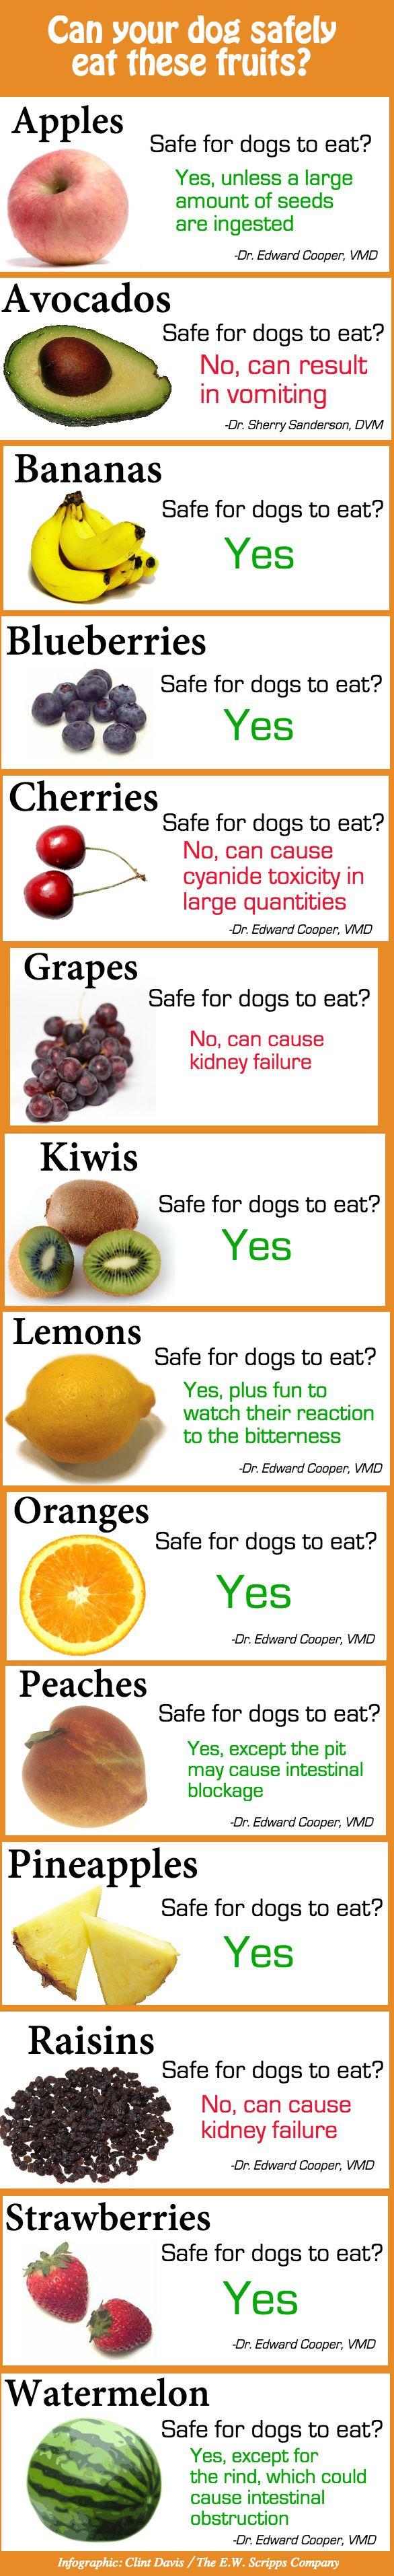 Make sure you know which fruits are okay to feed your dog, and which to stay away from!